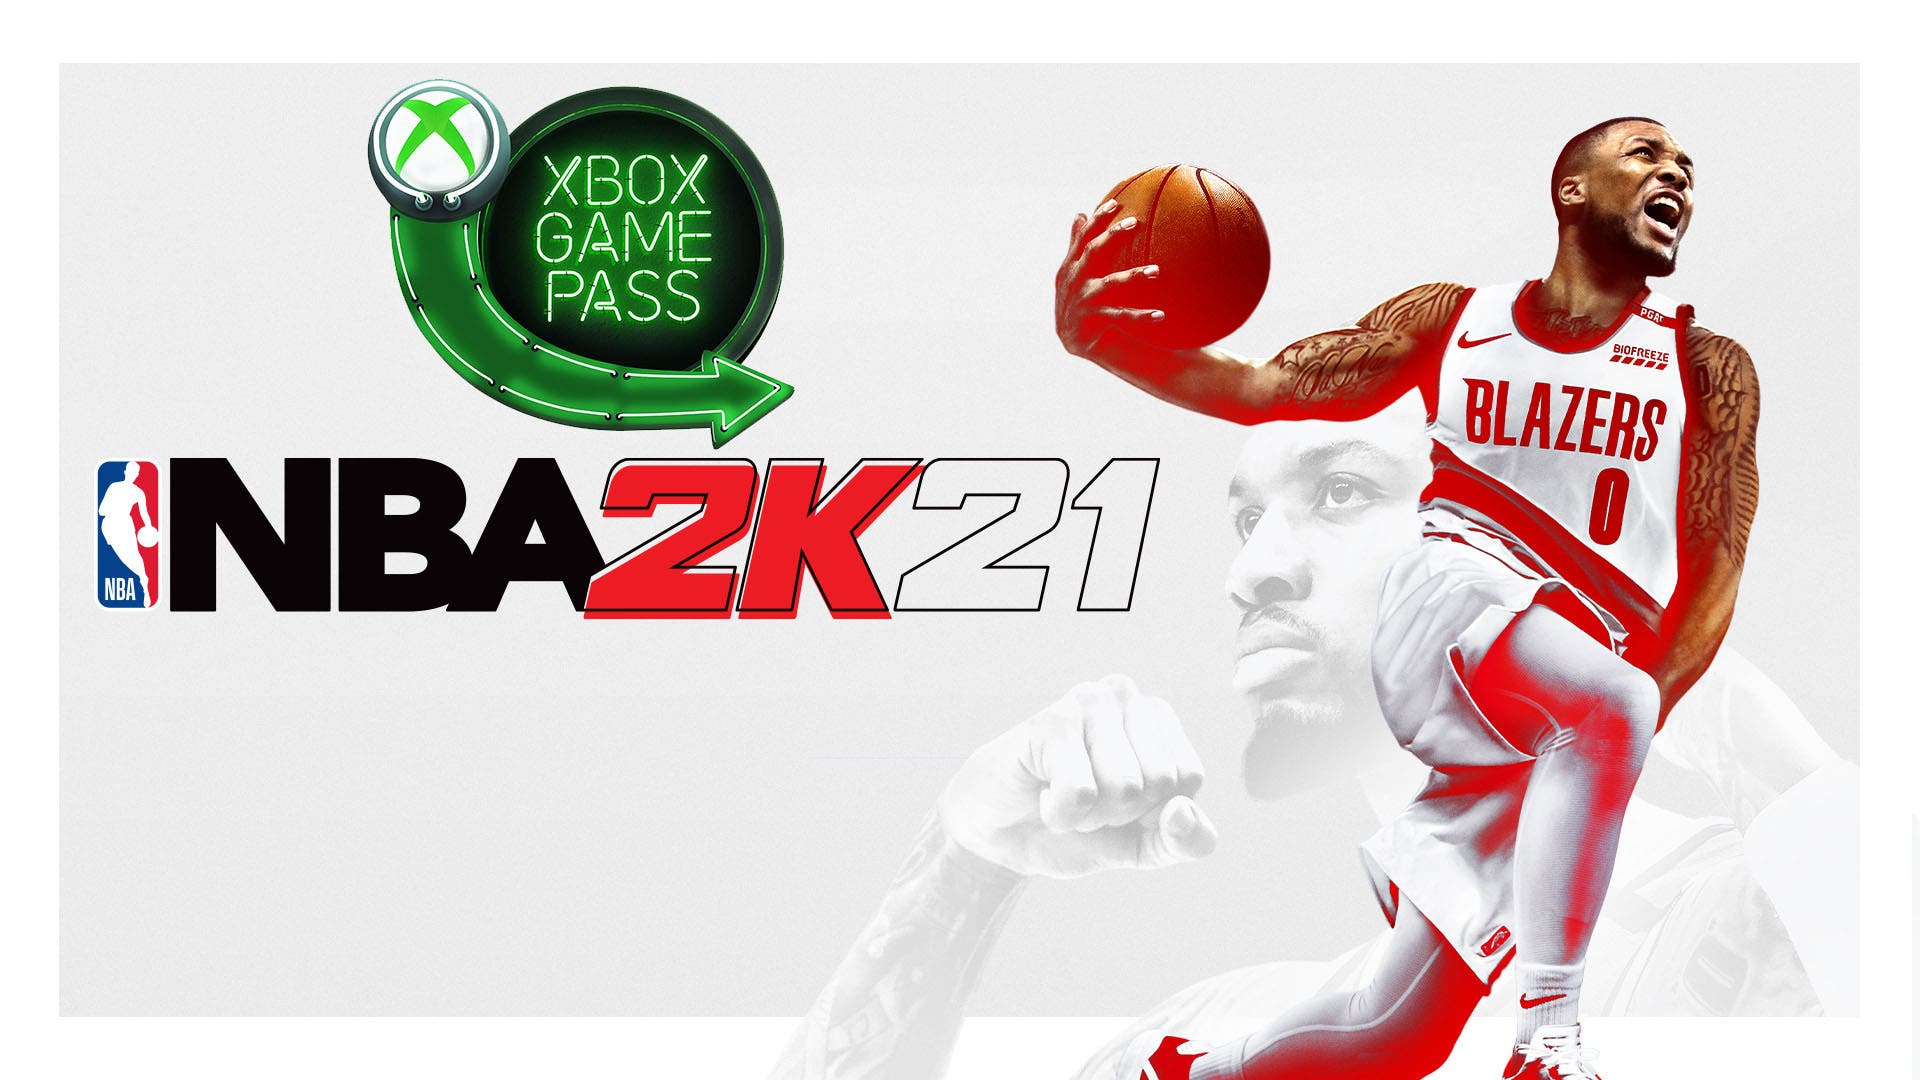 Ya disponible nba 2k21 y otro juego en Xbox game pass